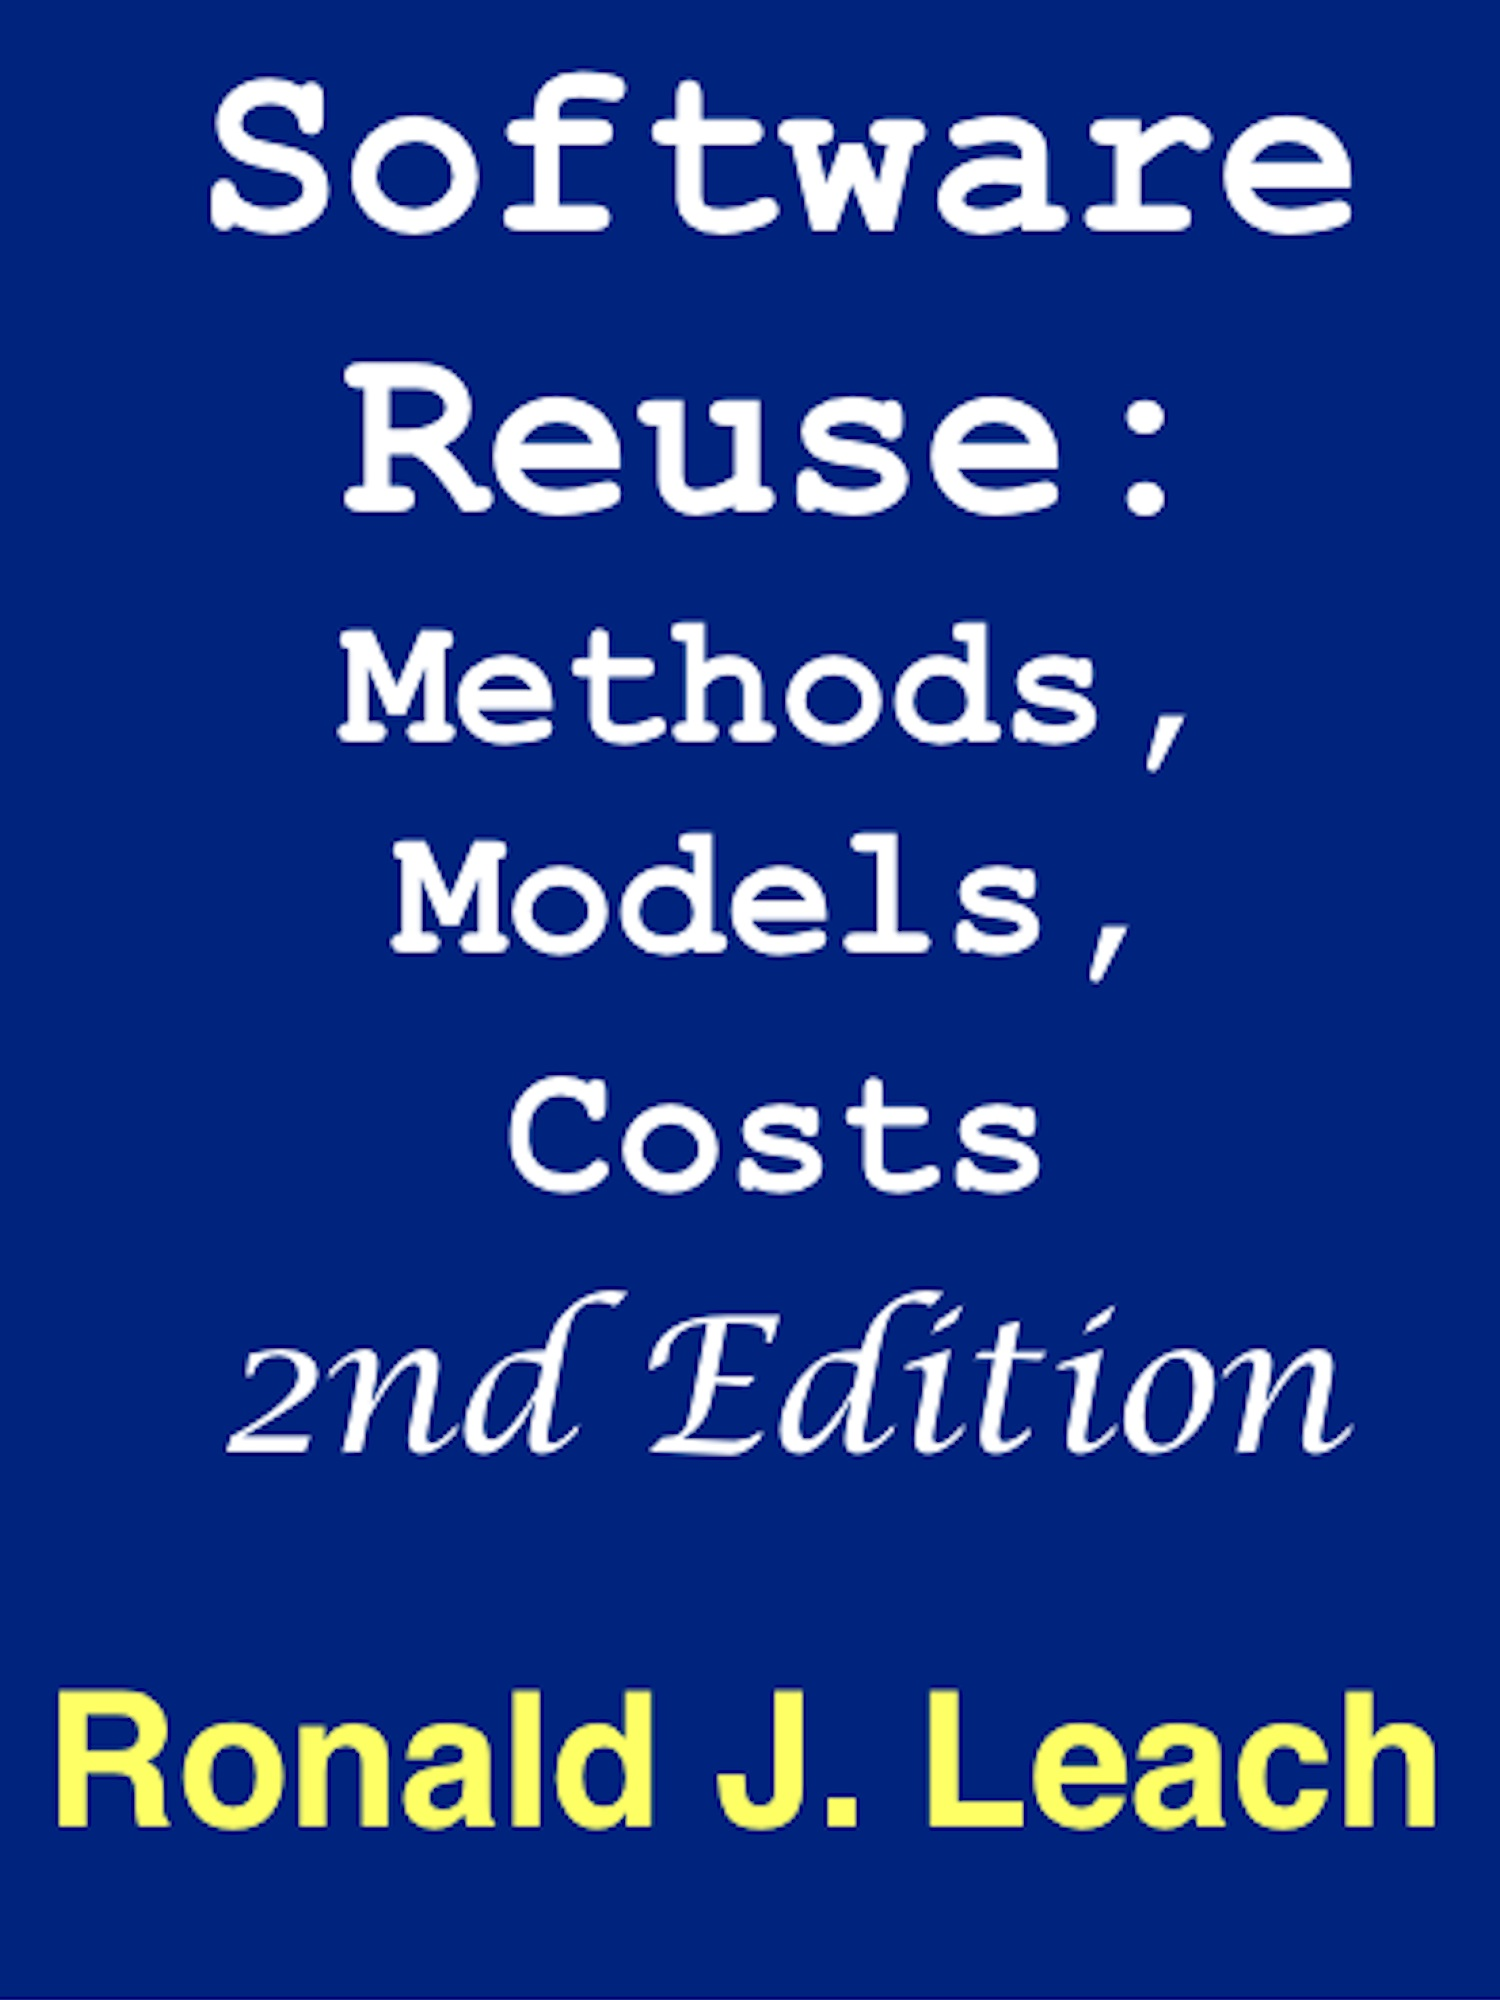 Software Reuse: Methods, Models Costs Second Edition